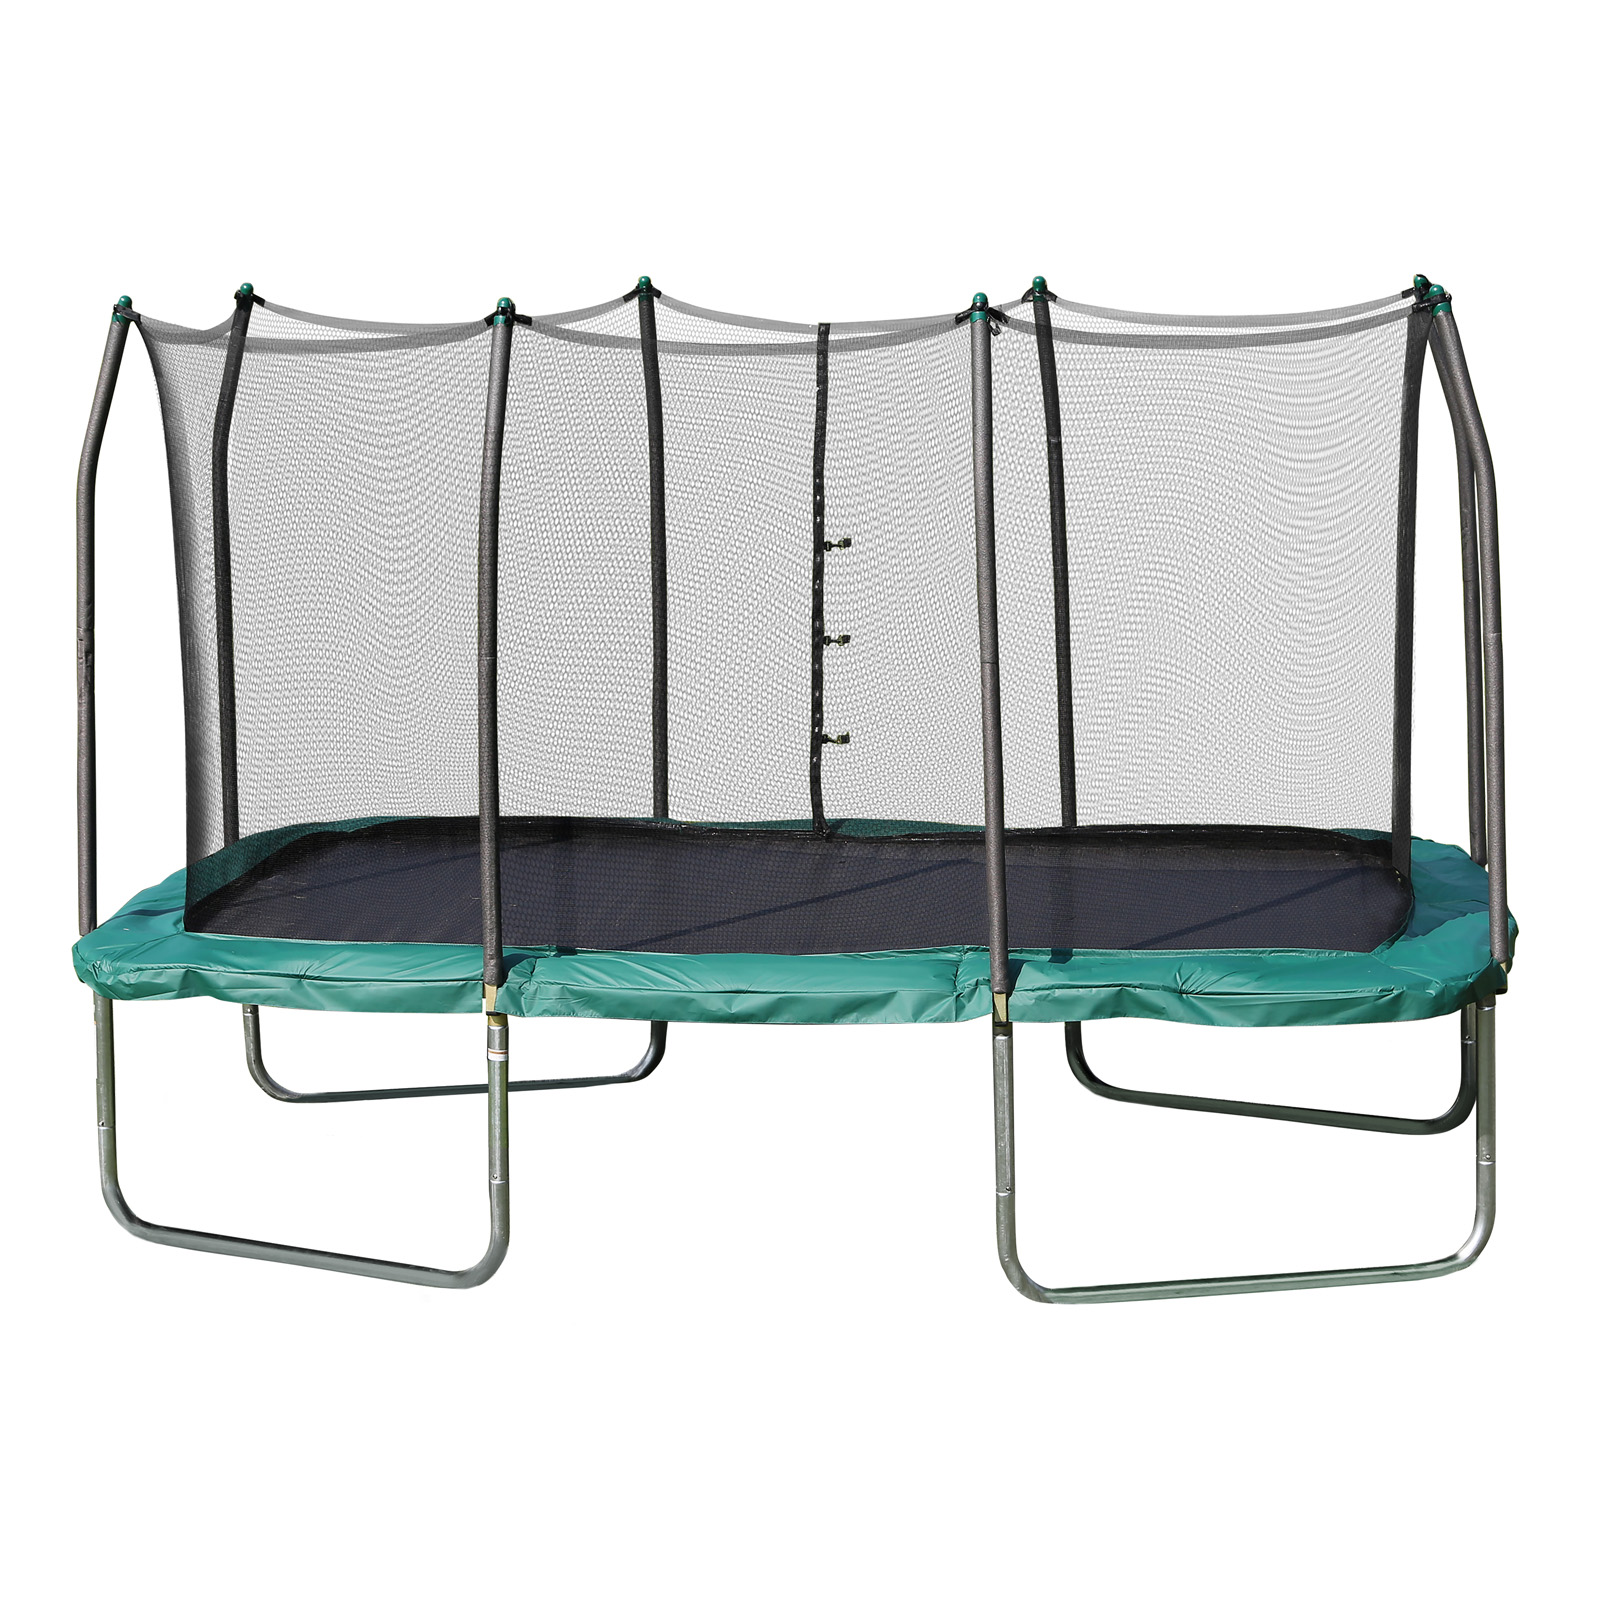 Skywalker 14 Foot Square Trampoline And Enclosure With: Skywalker Trampolines Rectangle 8 X 14 Ft. Trampoline With